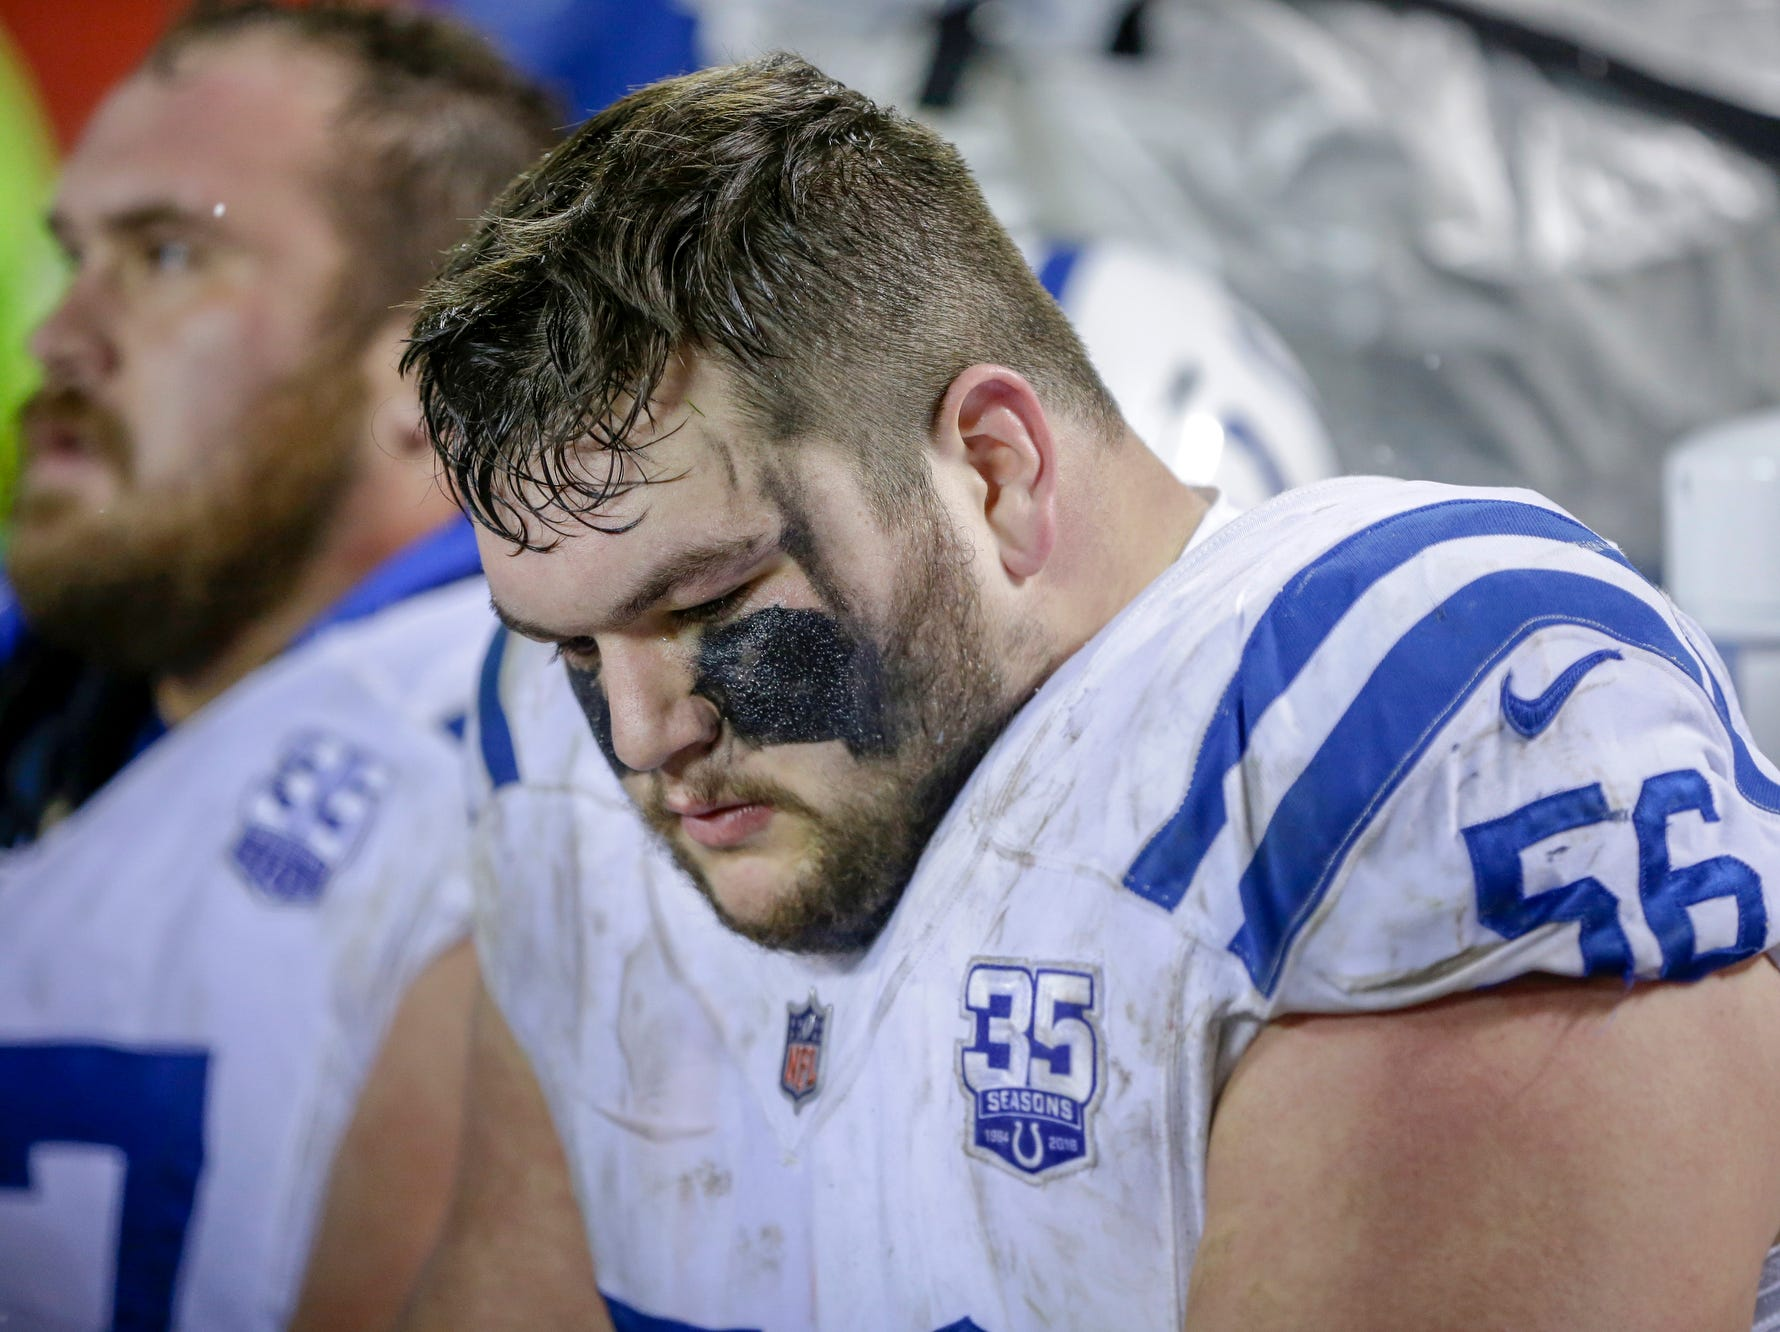 Indianapolis Colts offensive guard Quenton Nelson (56) sits on the sideline late in the game against the Kansas City Chiefs in the fourth quarter at Arrowhead Stadium in Kansas City, Mo., on Saturday, Jan. 12, 2019.